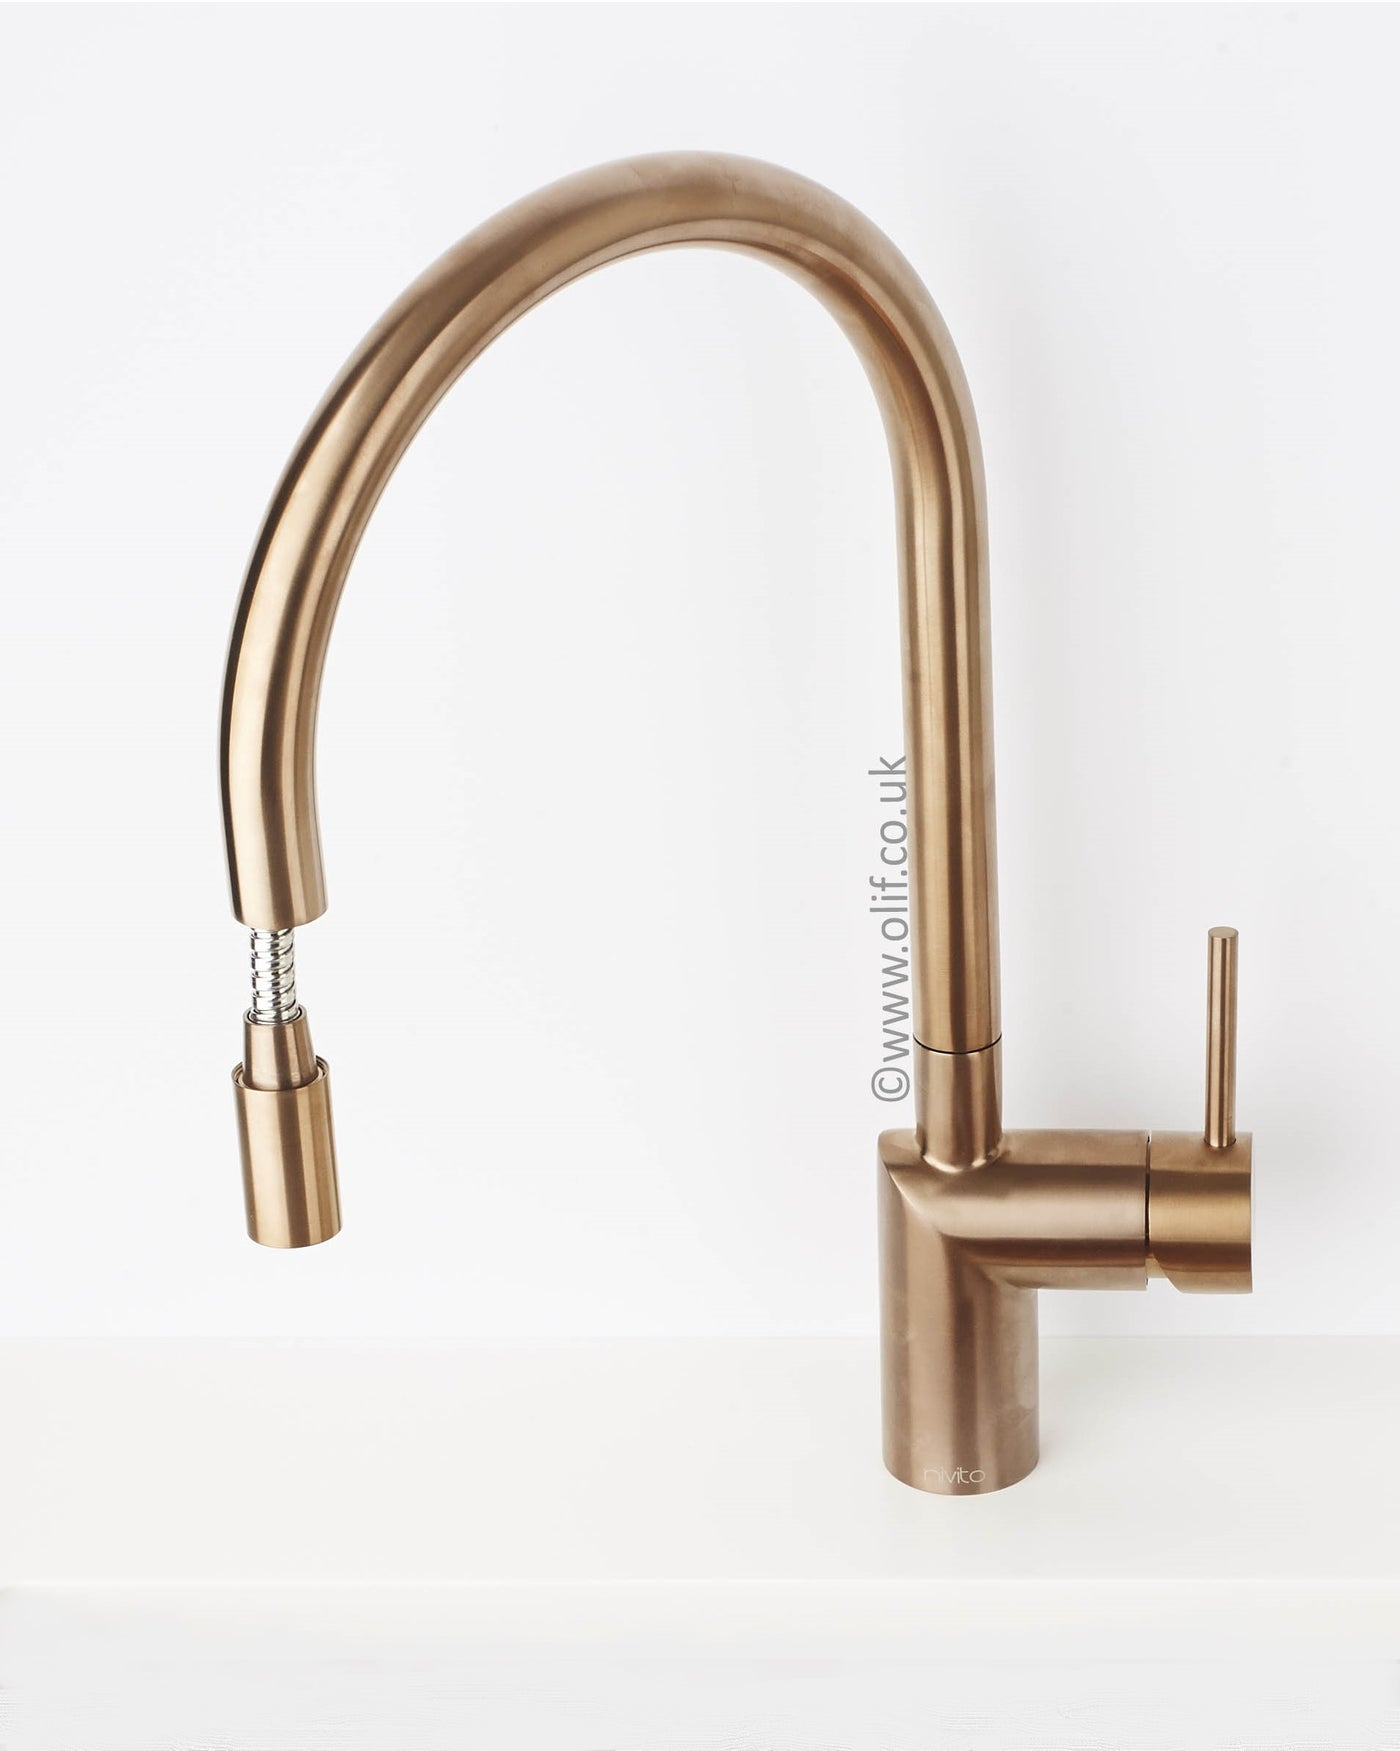 Brushed Copper Pull Out Mixer Tap Stainless Steel Uk Nivito Rh 150 Ex Olif